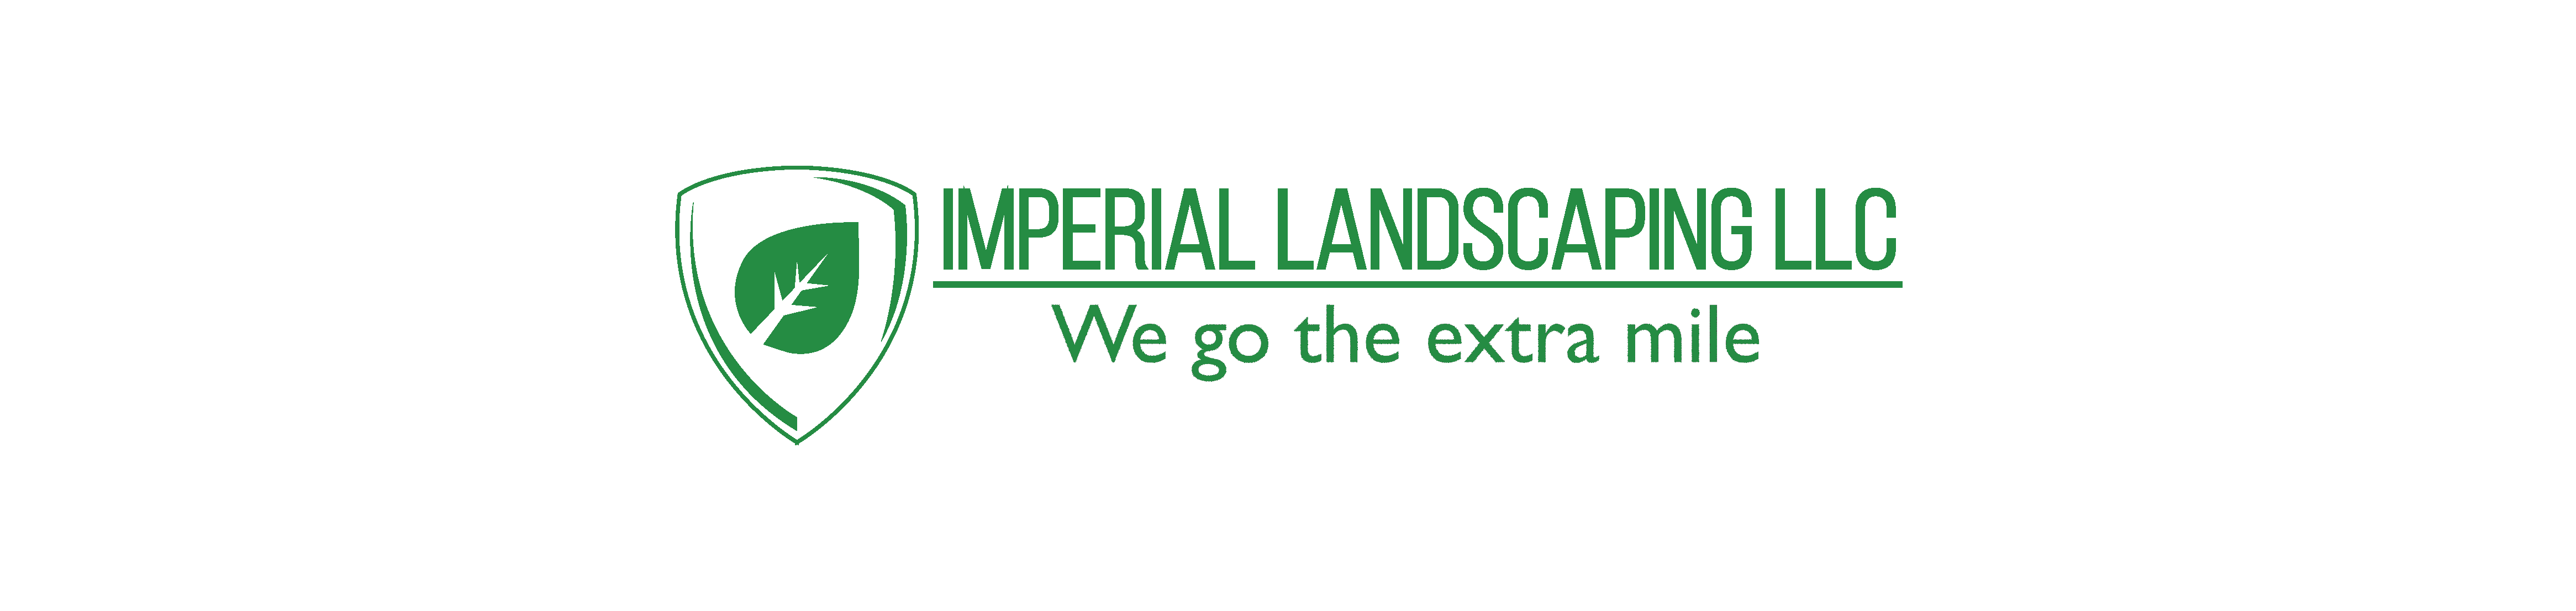 Imperial Landscaping LLC